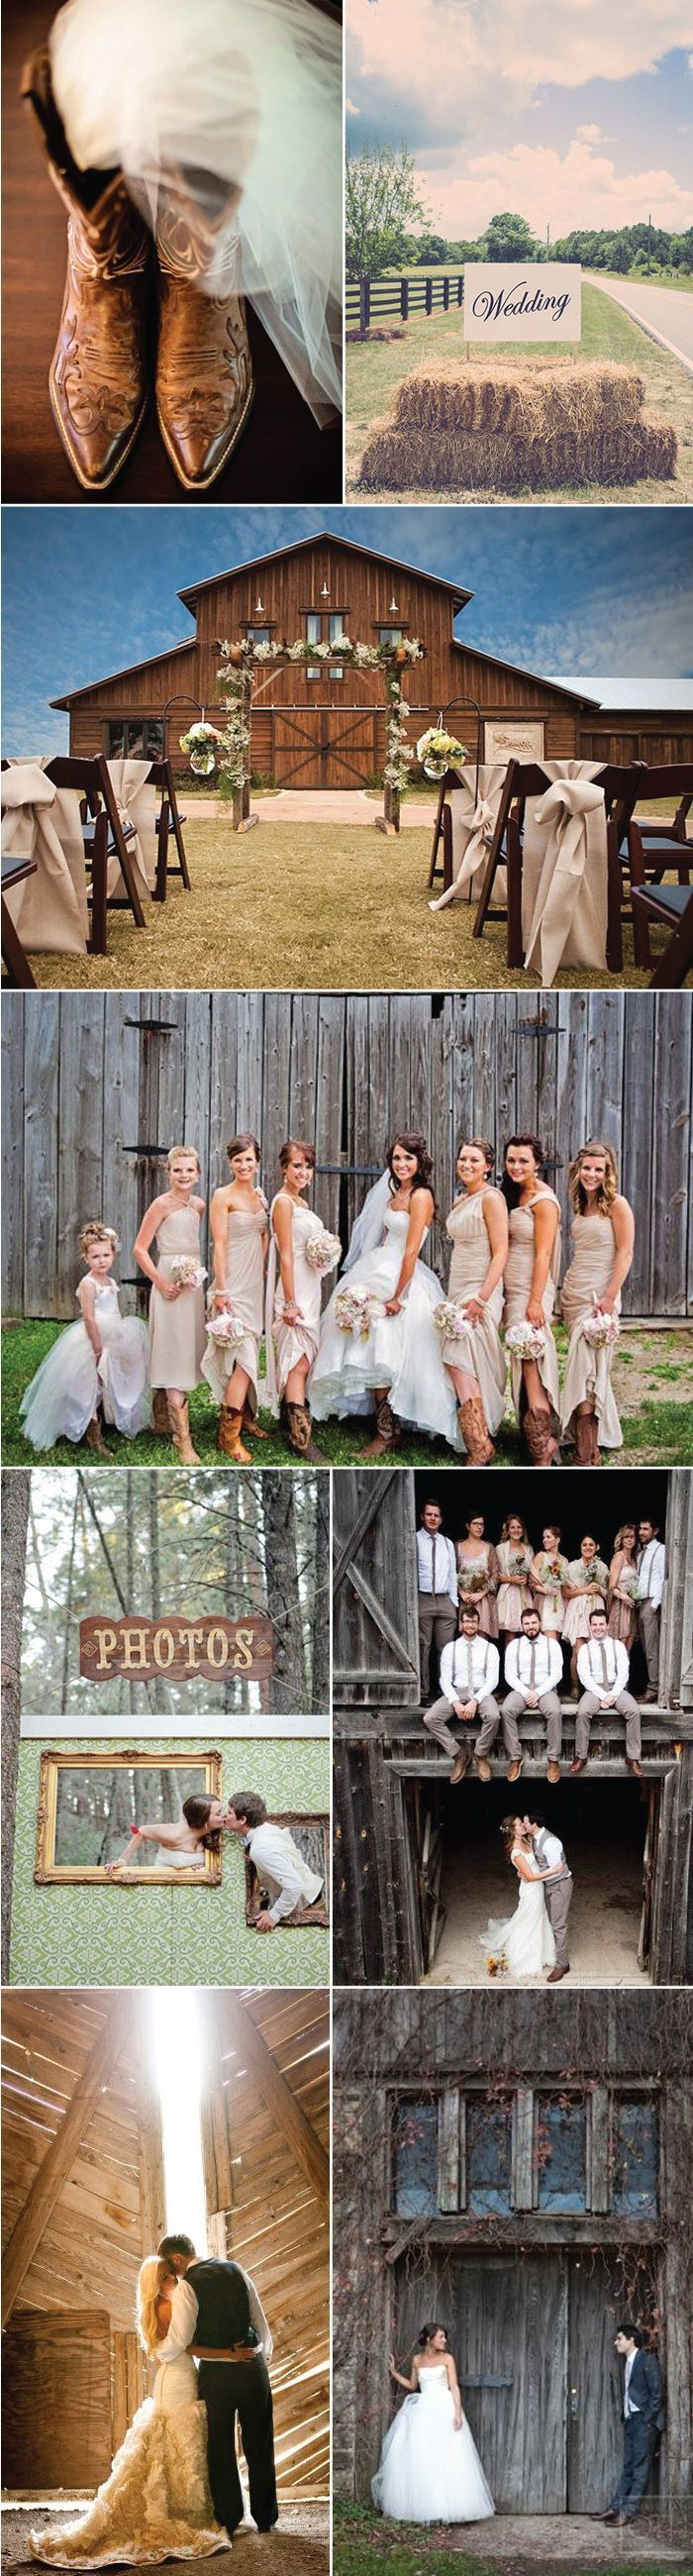 cool country wedding ideas best photos                                                                                                                                                                                 More